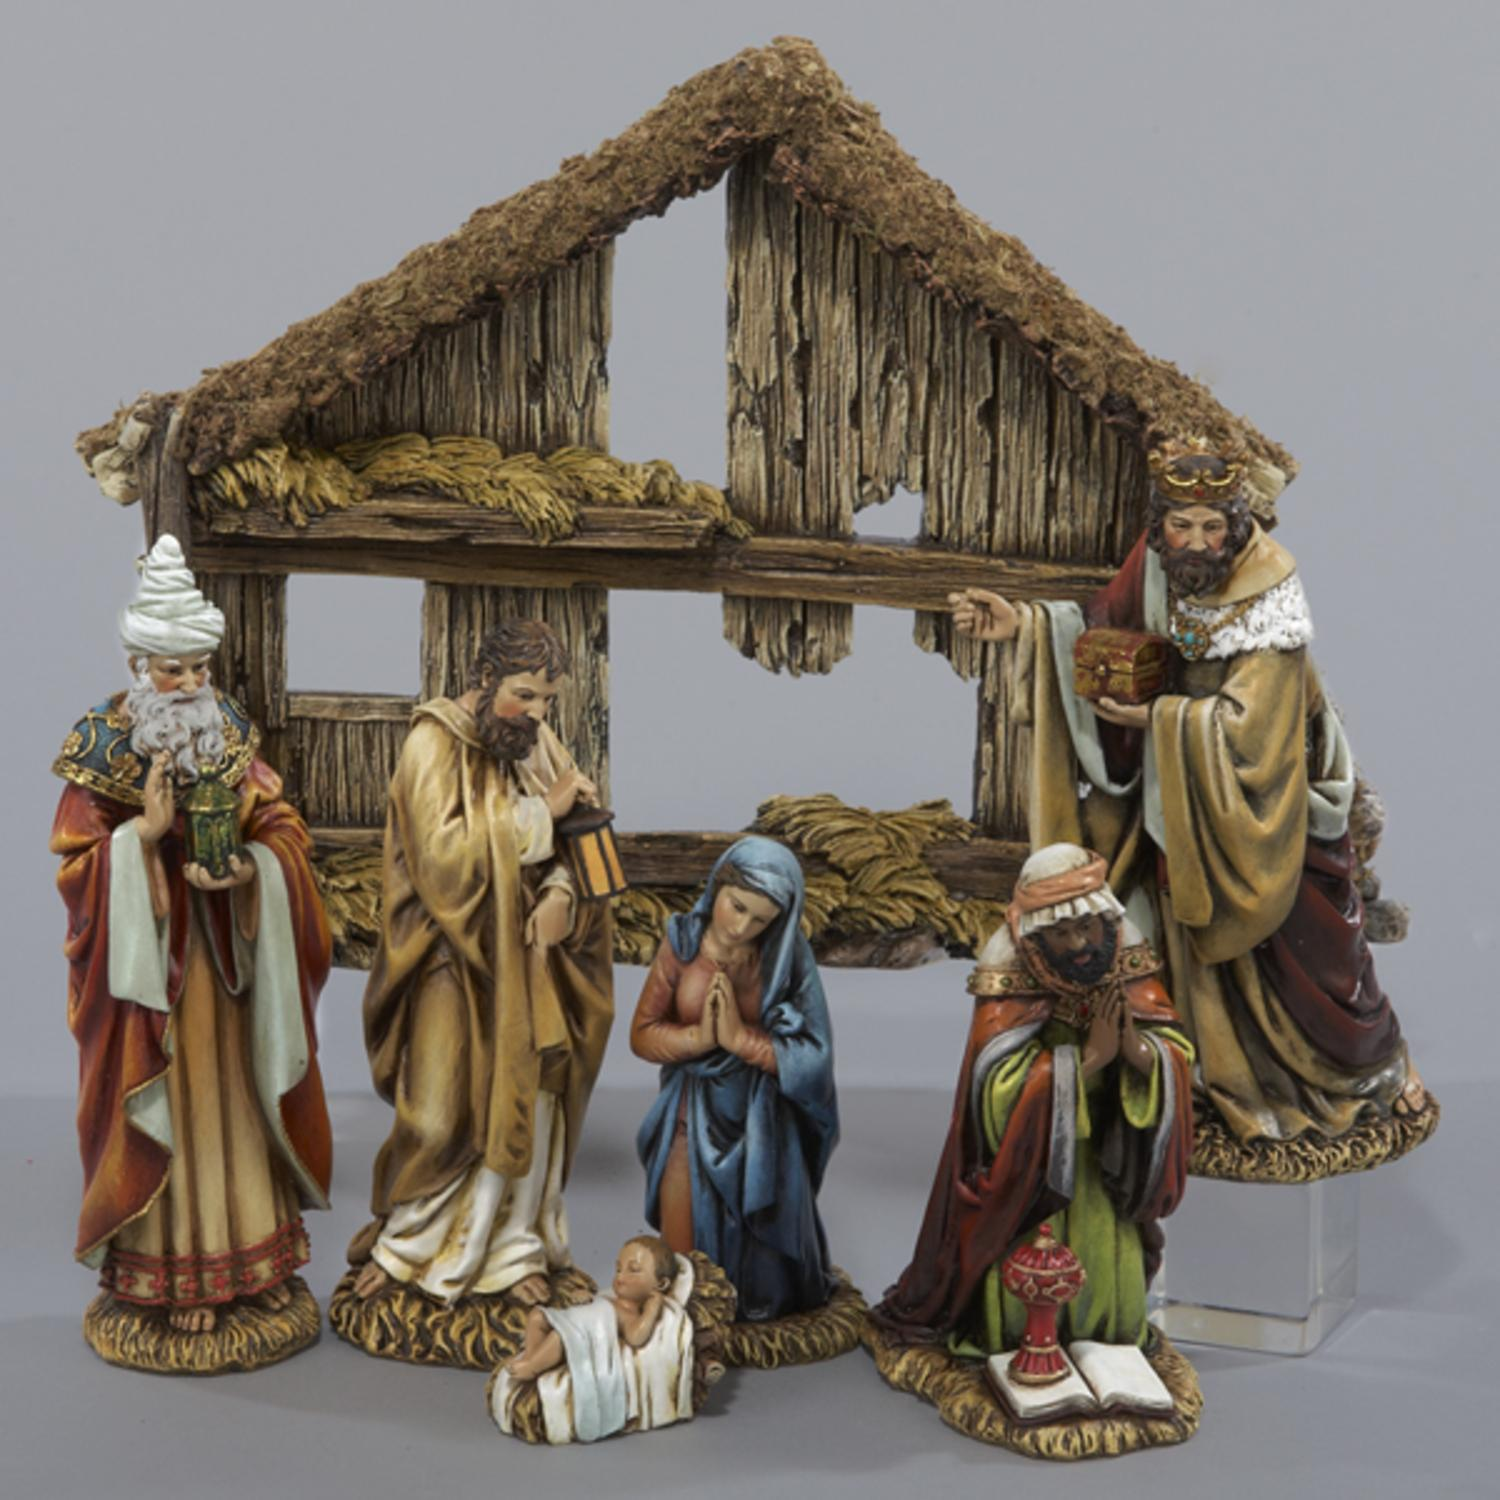 lighted outdoor mosaic nativity scene 3pc walmartcom